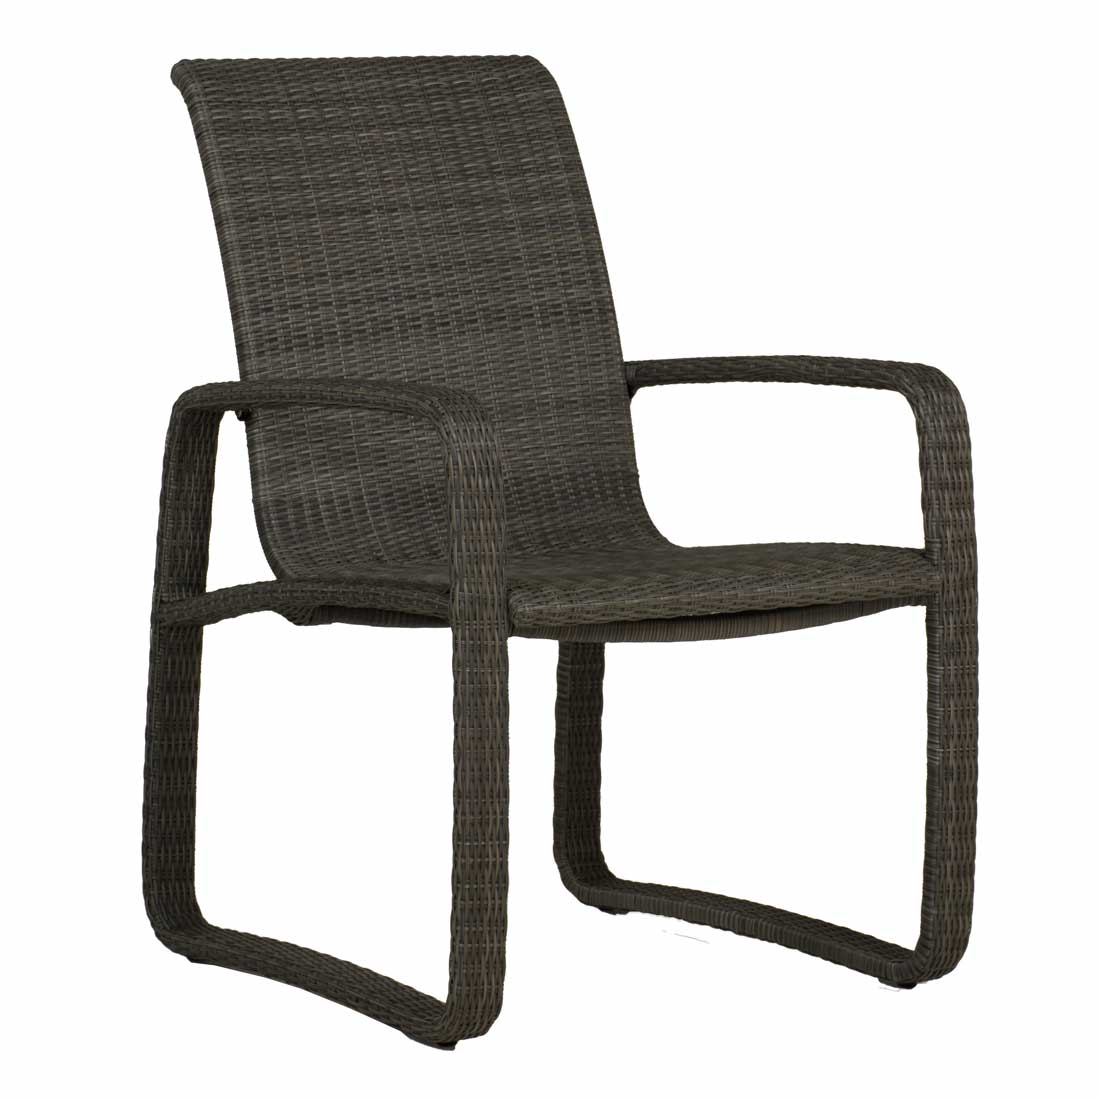 Delray Woven Arm Chair Summer Classics